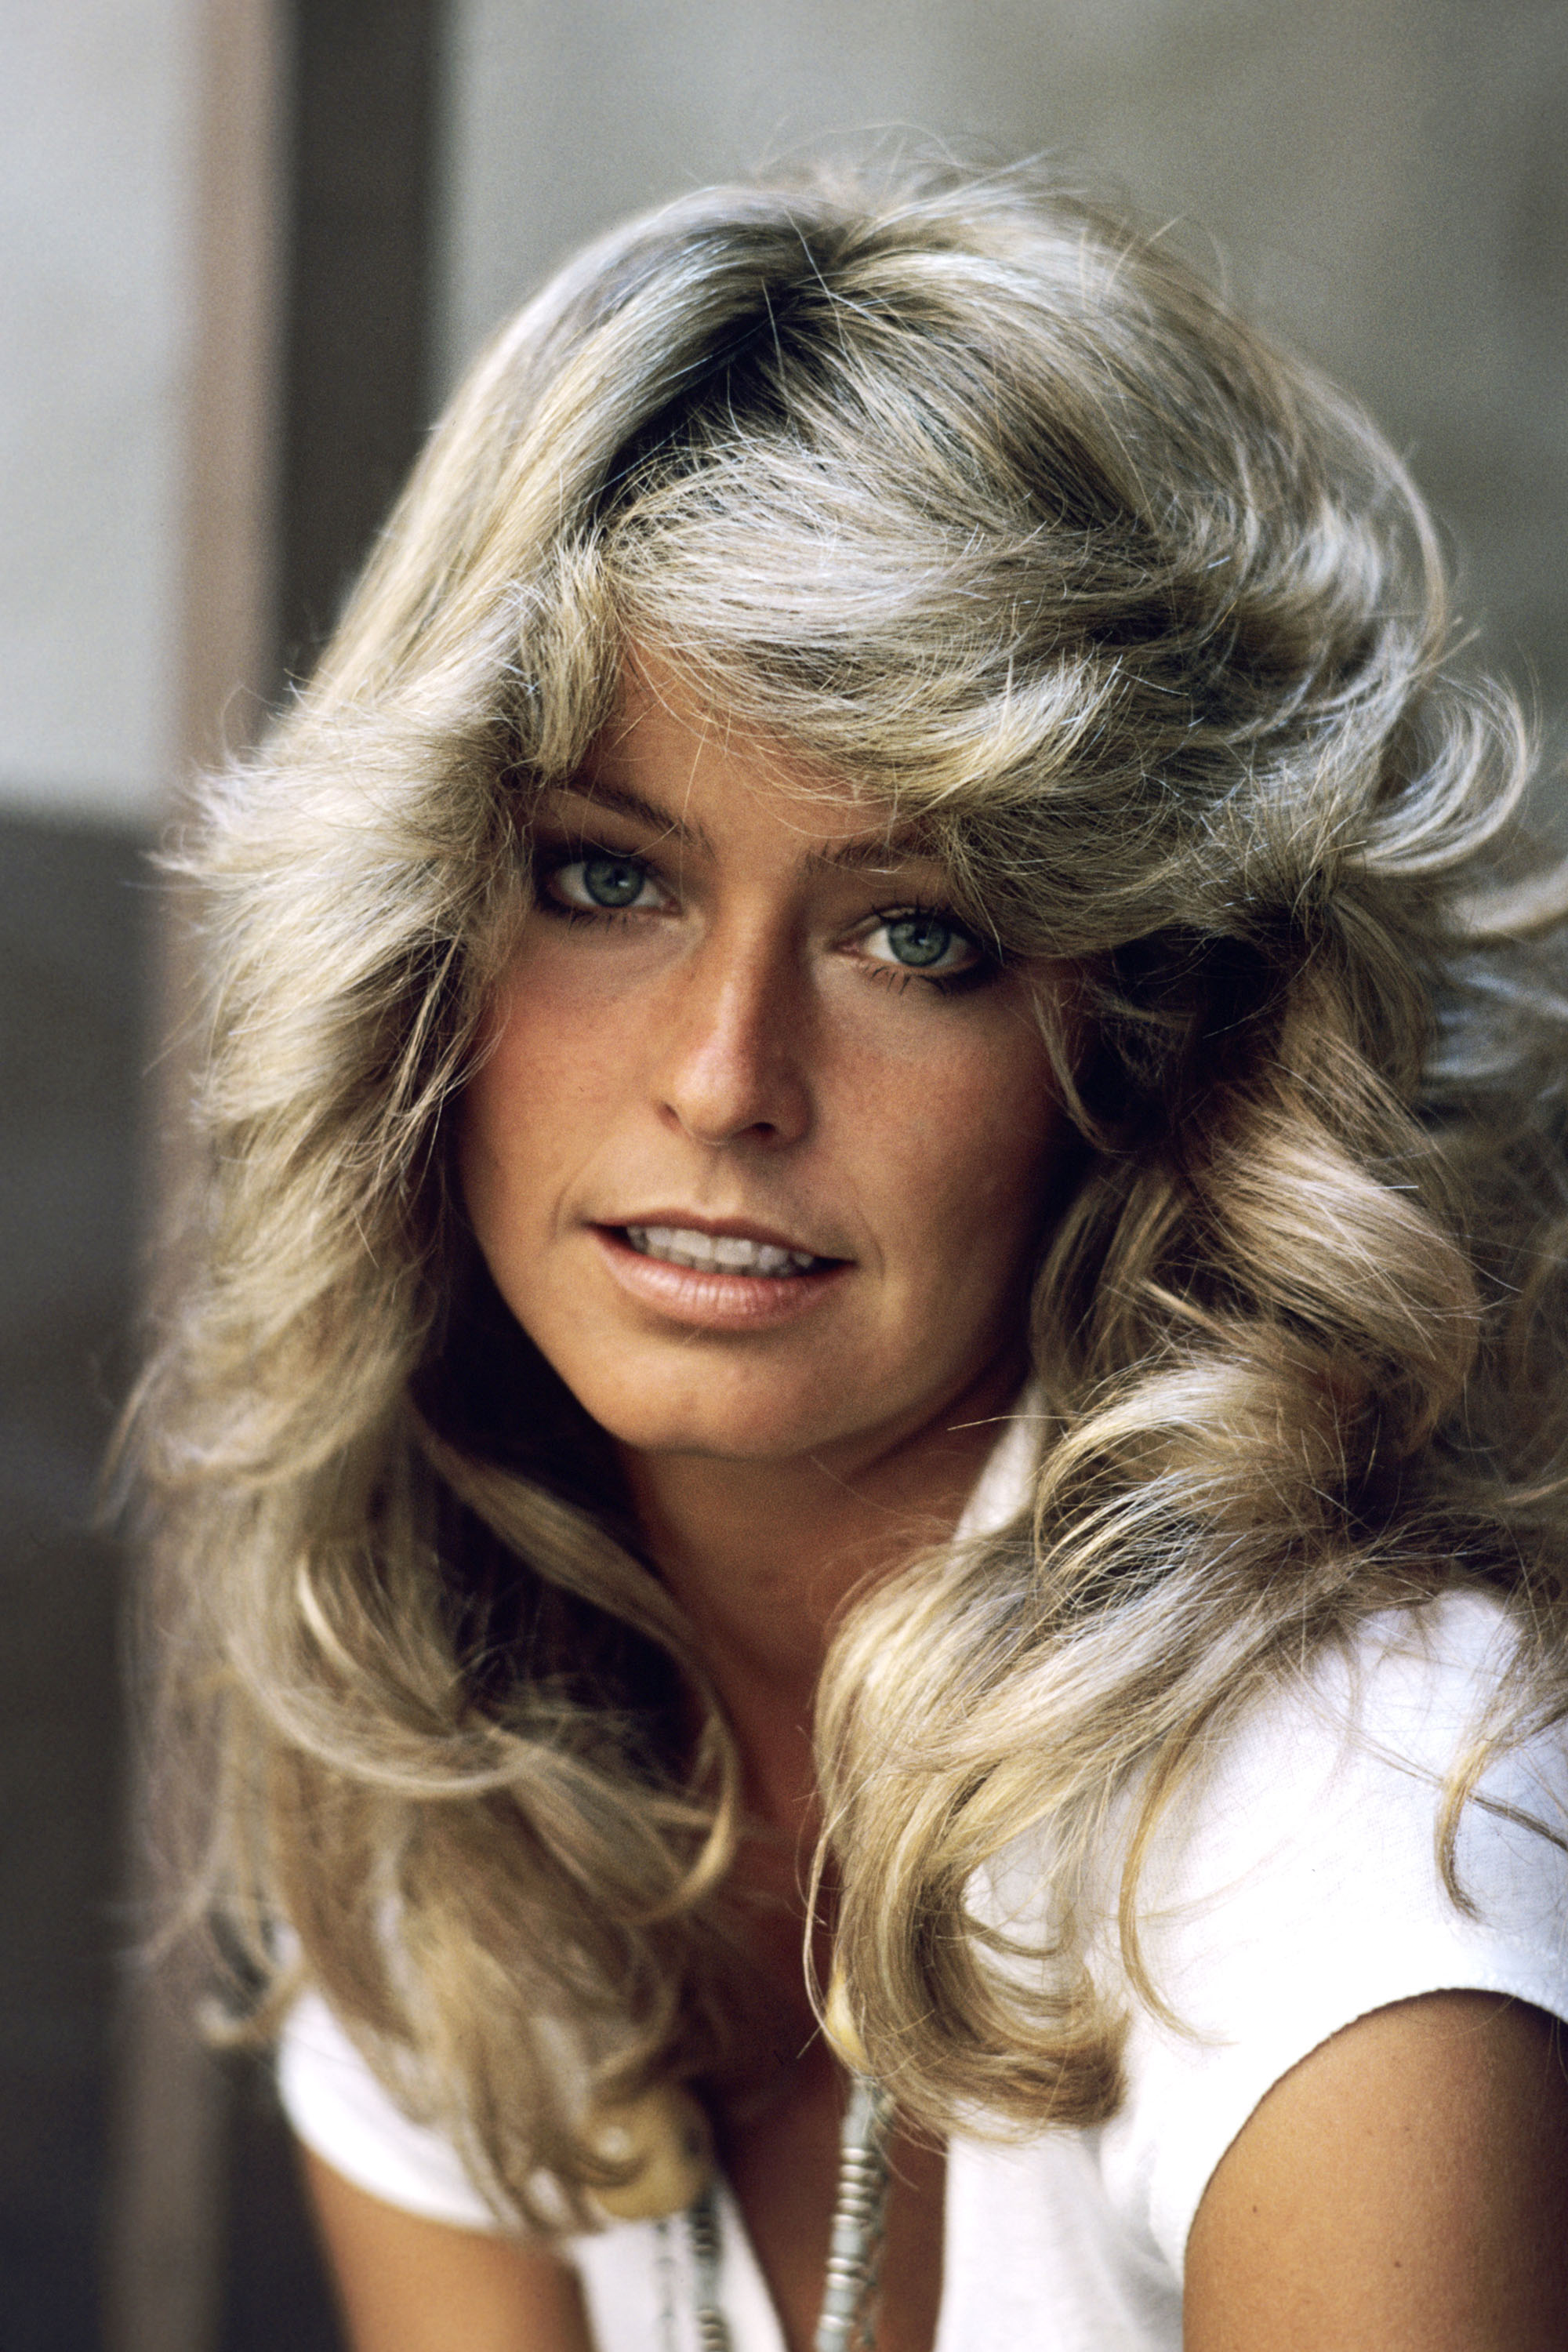 Farrah Fawcett's Best Moments - Farrah Fawcett's Most ...